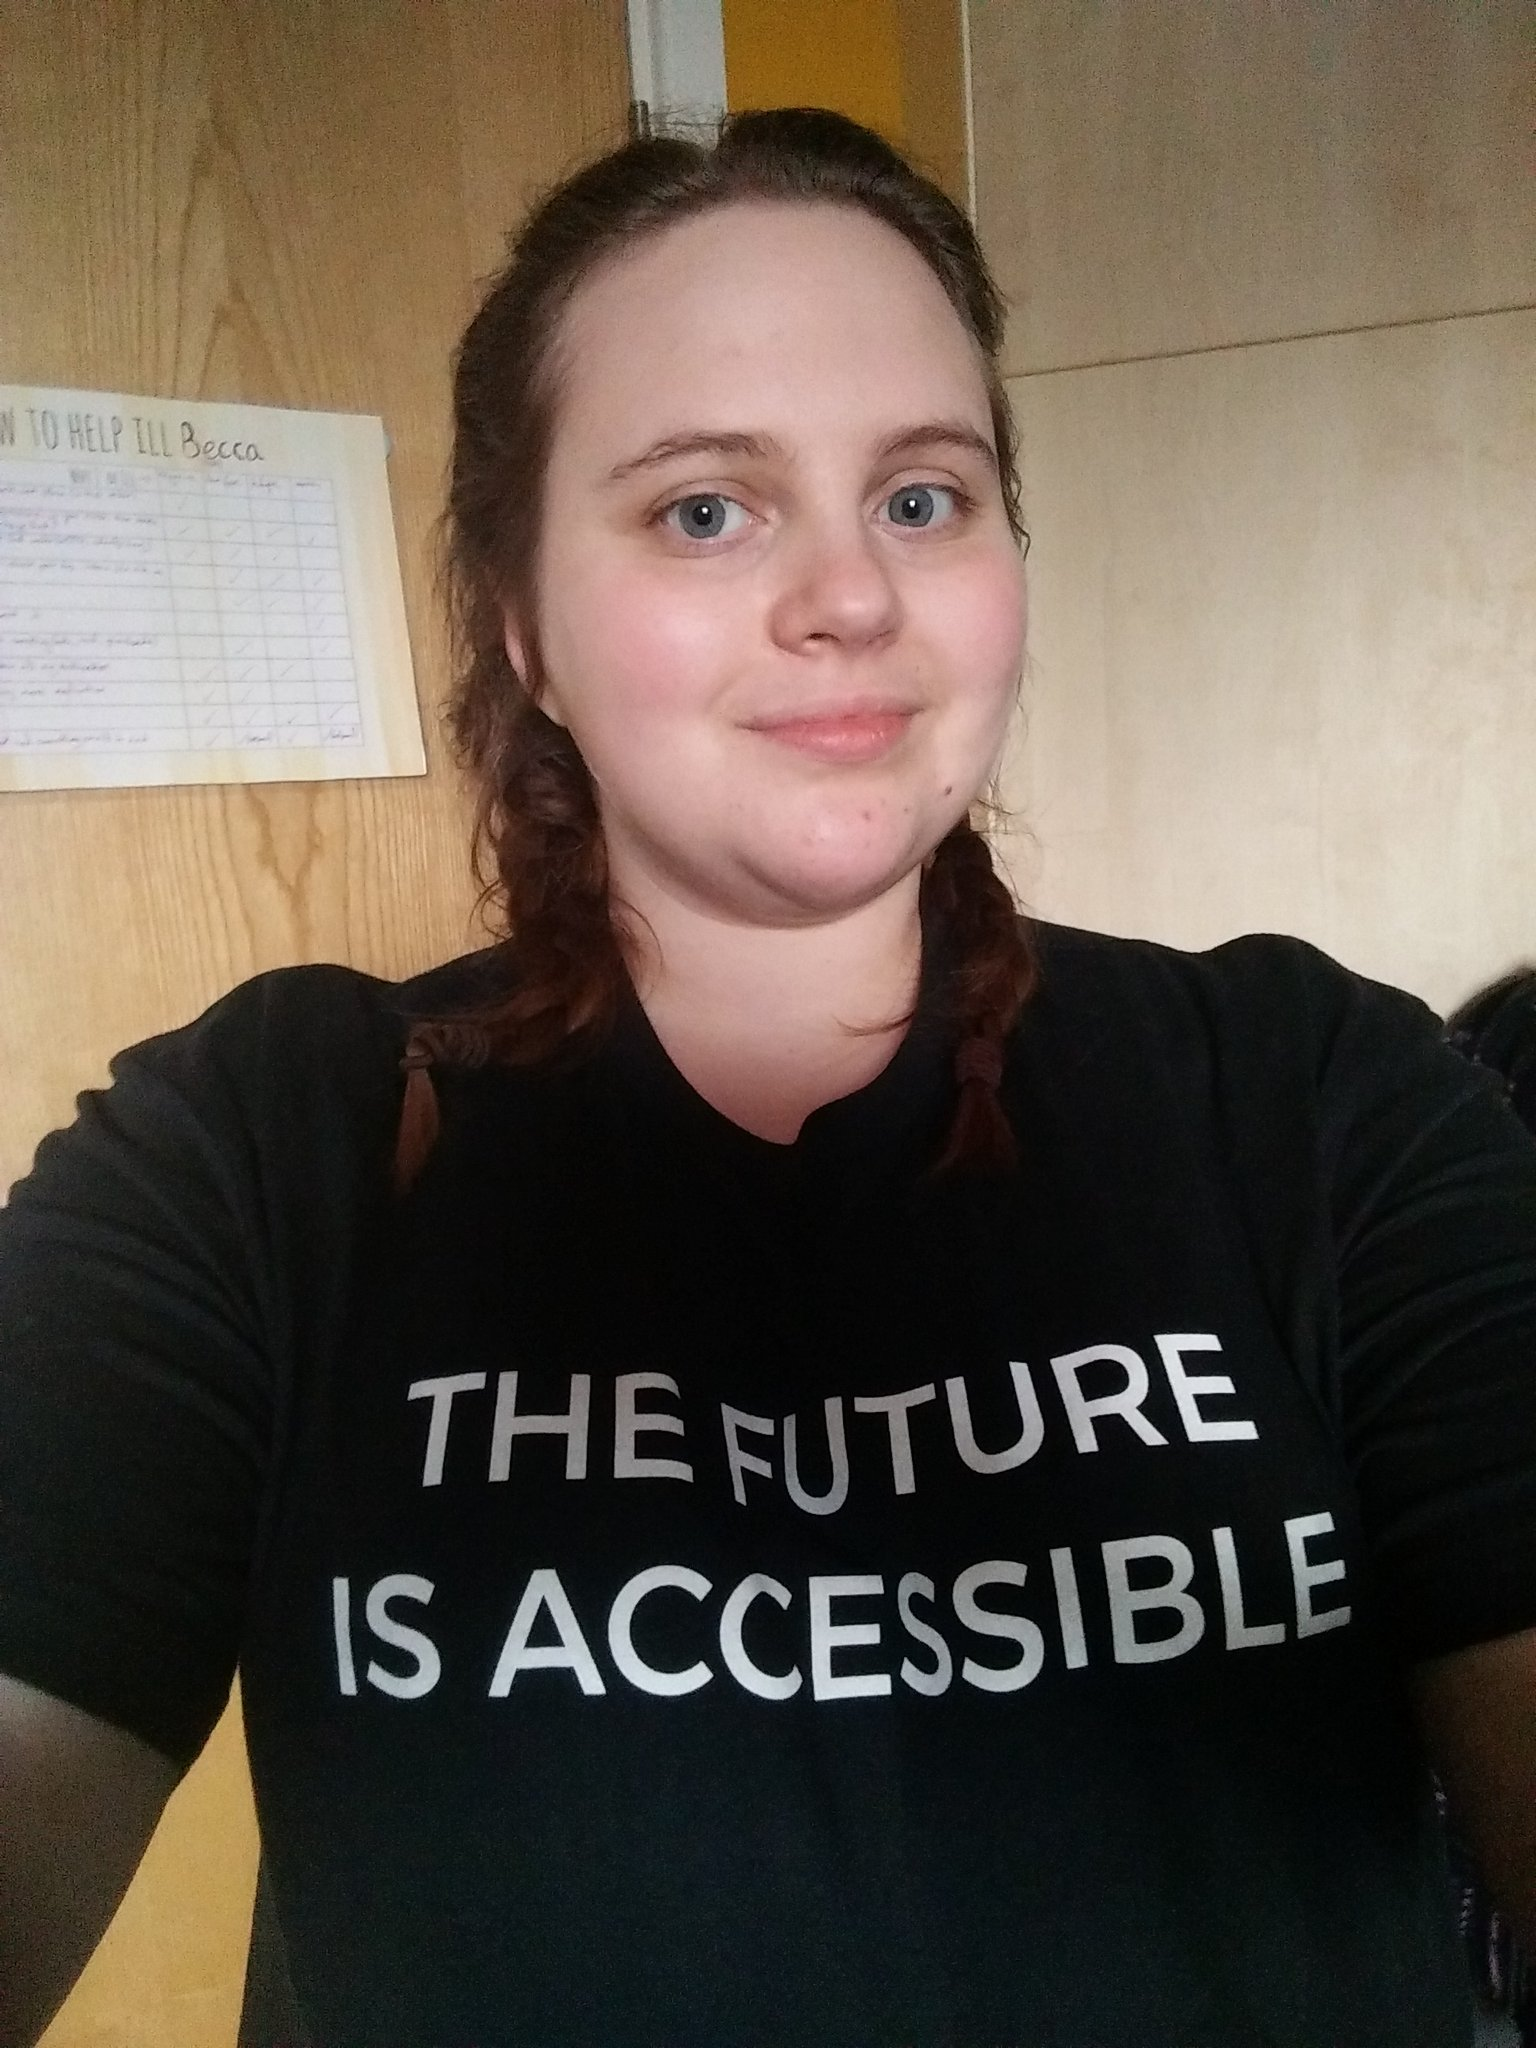 The future is accessible T-shirt by @annieelainey  made it to the UK and I love it. #disability https://t.co/D4JXXBpJho